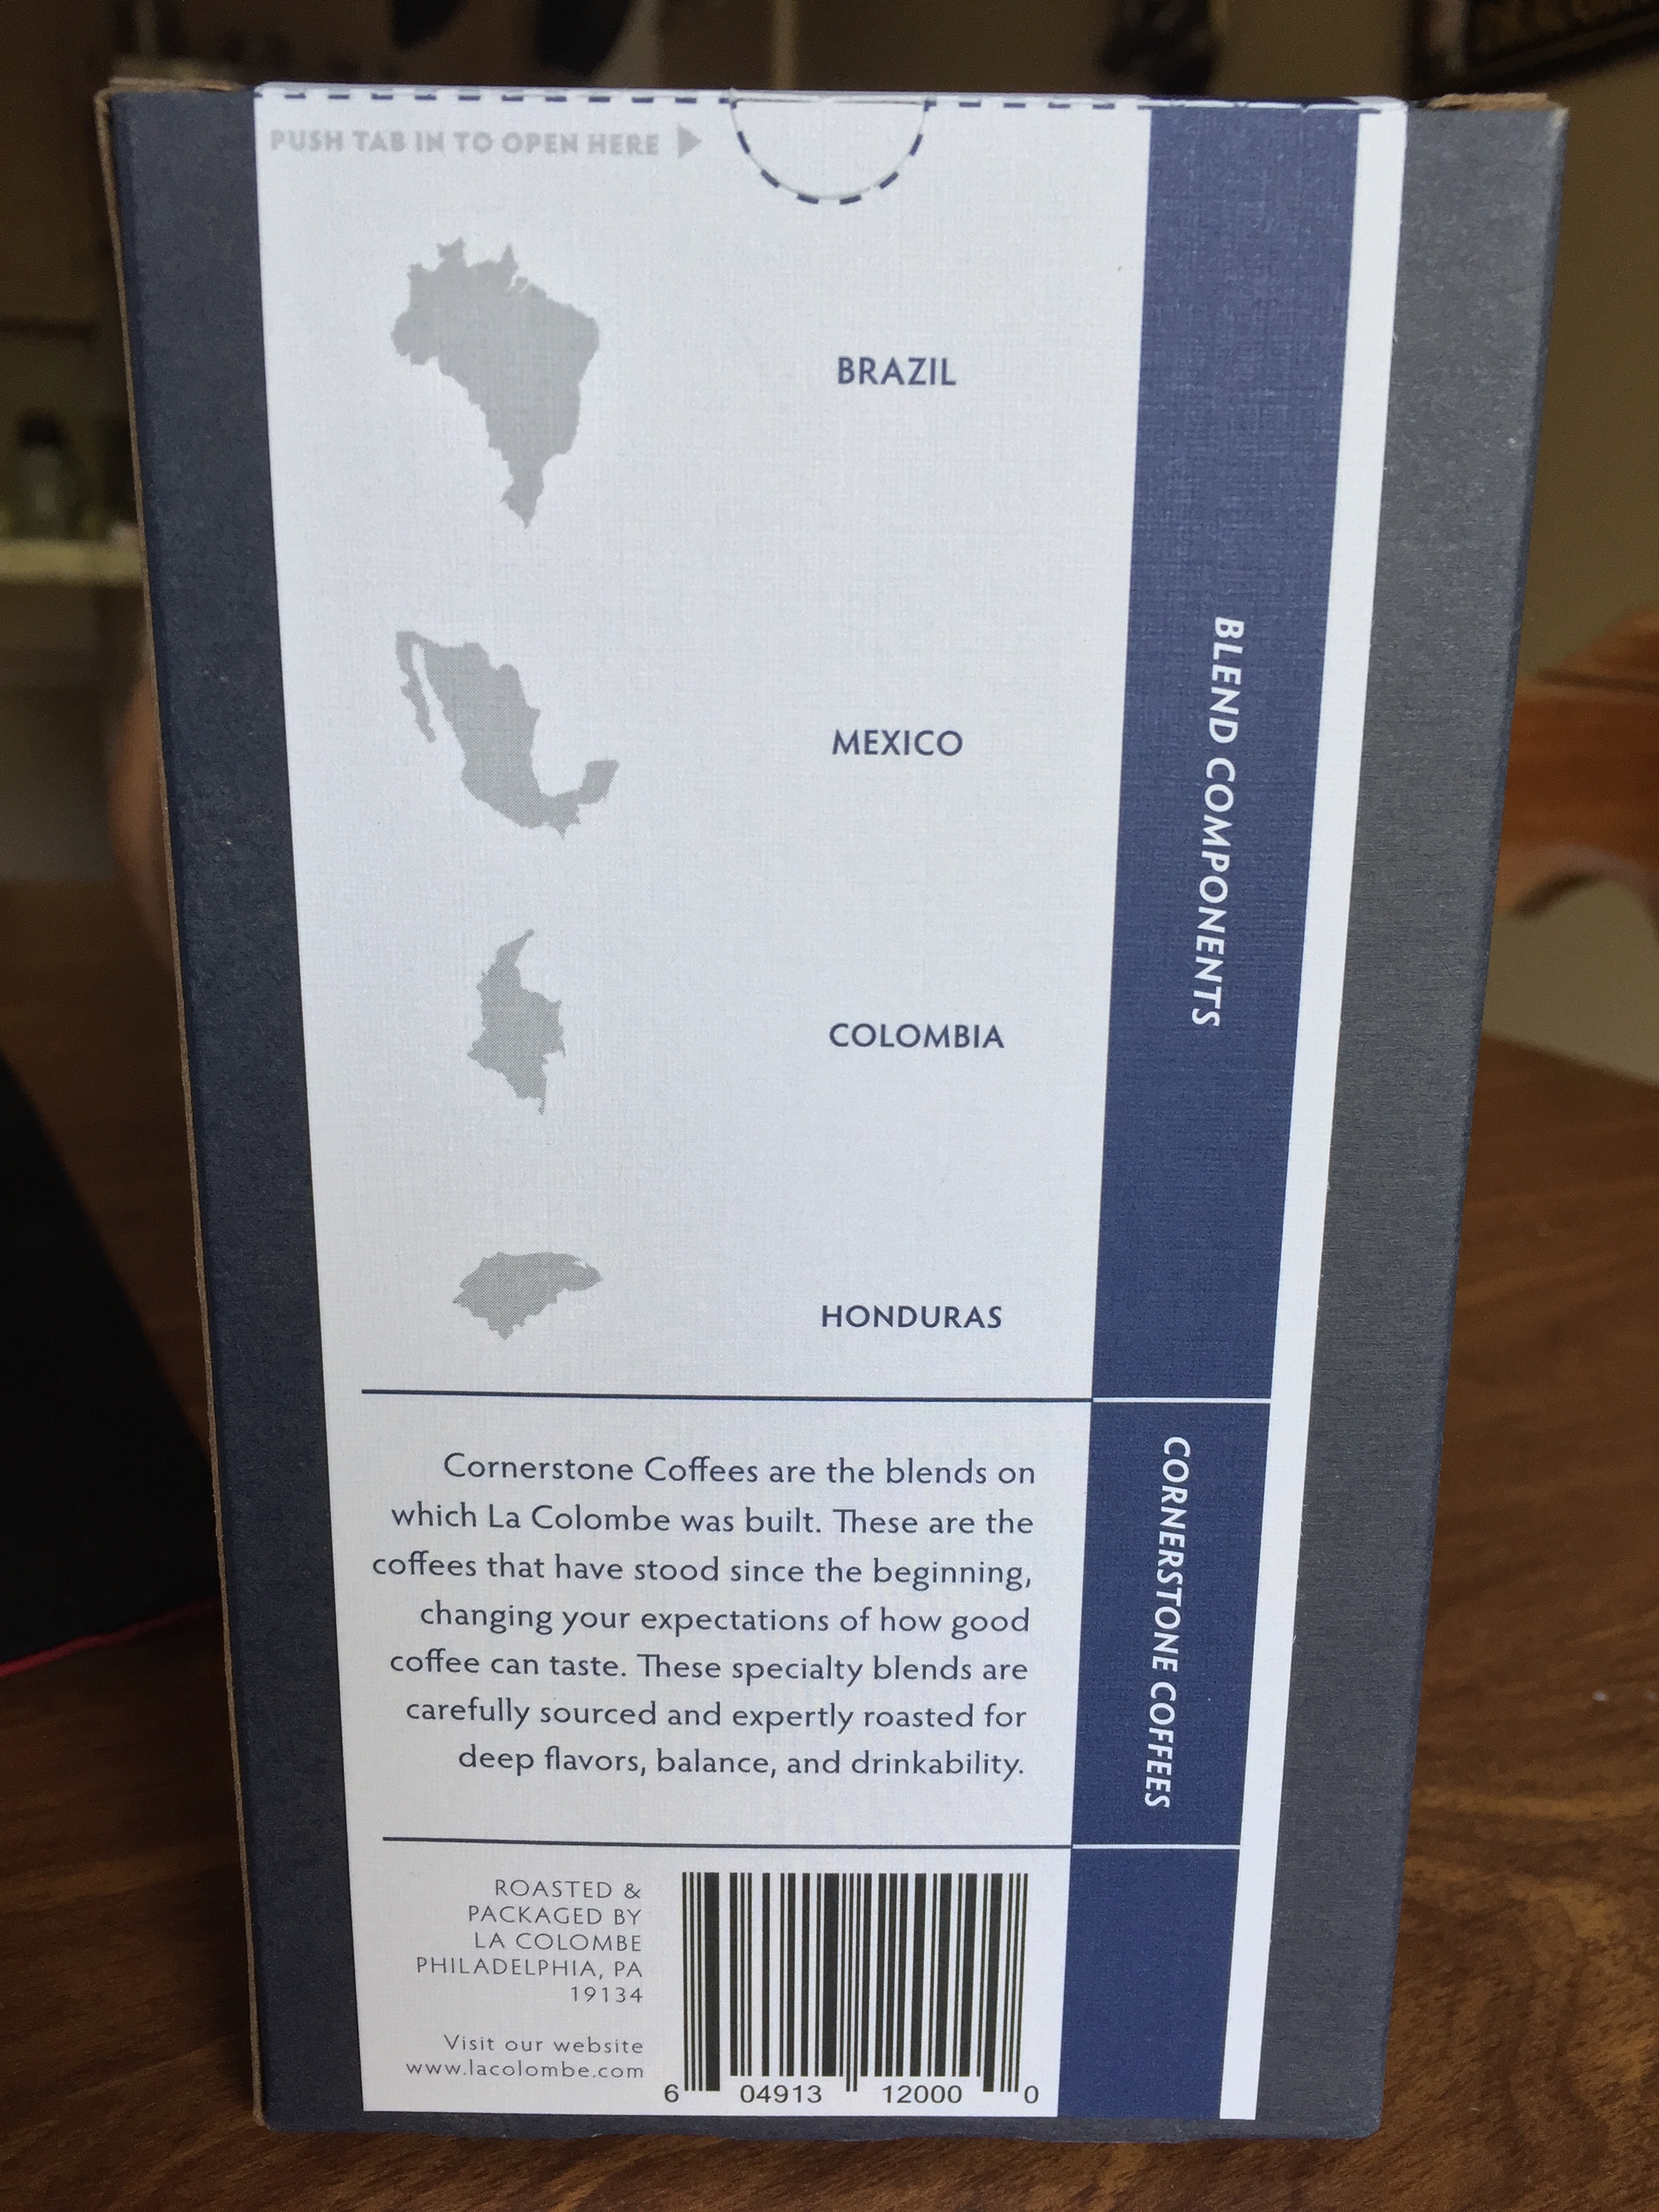 The back of the La Colombe Corsica Box highlighting the travels of its beans.